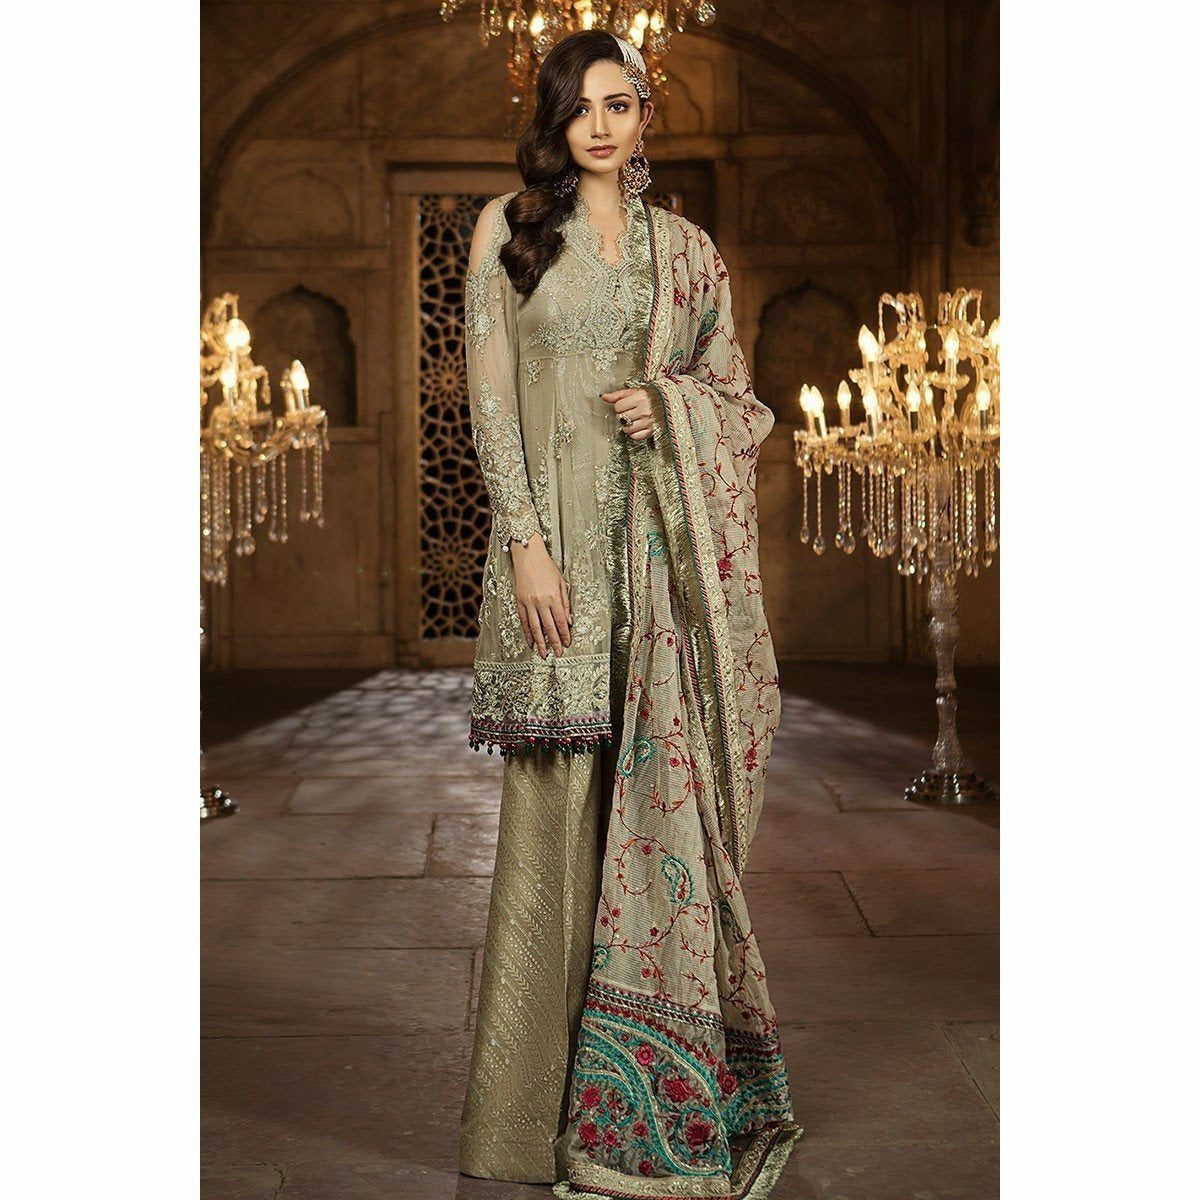 60f2af973b MARIA B MBROIDERED EID COLLECTION 2018 - VOL 2 - BEIGE (BD-1403)